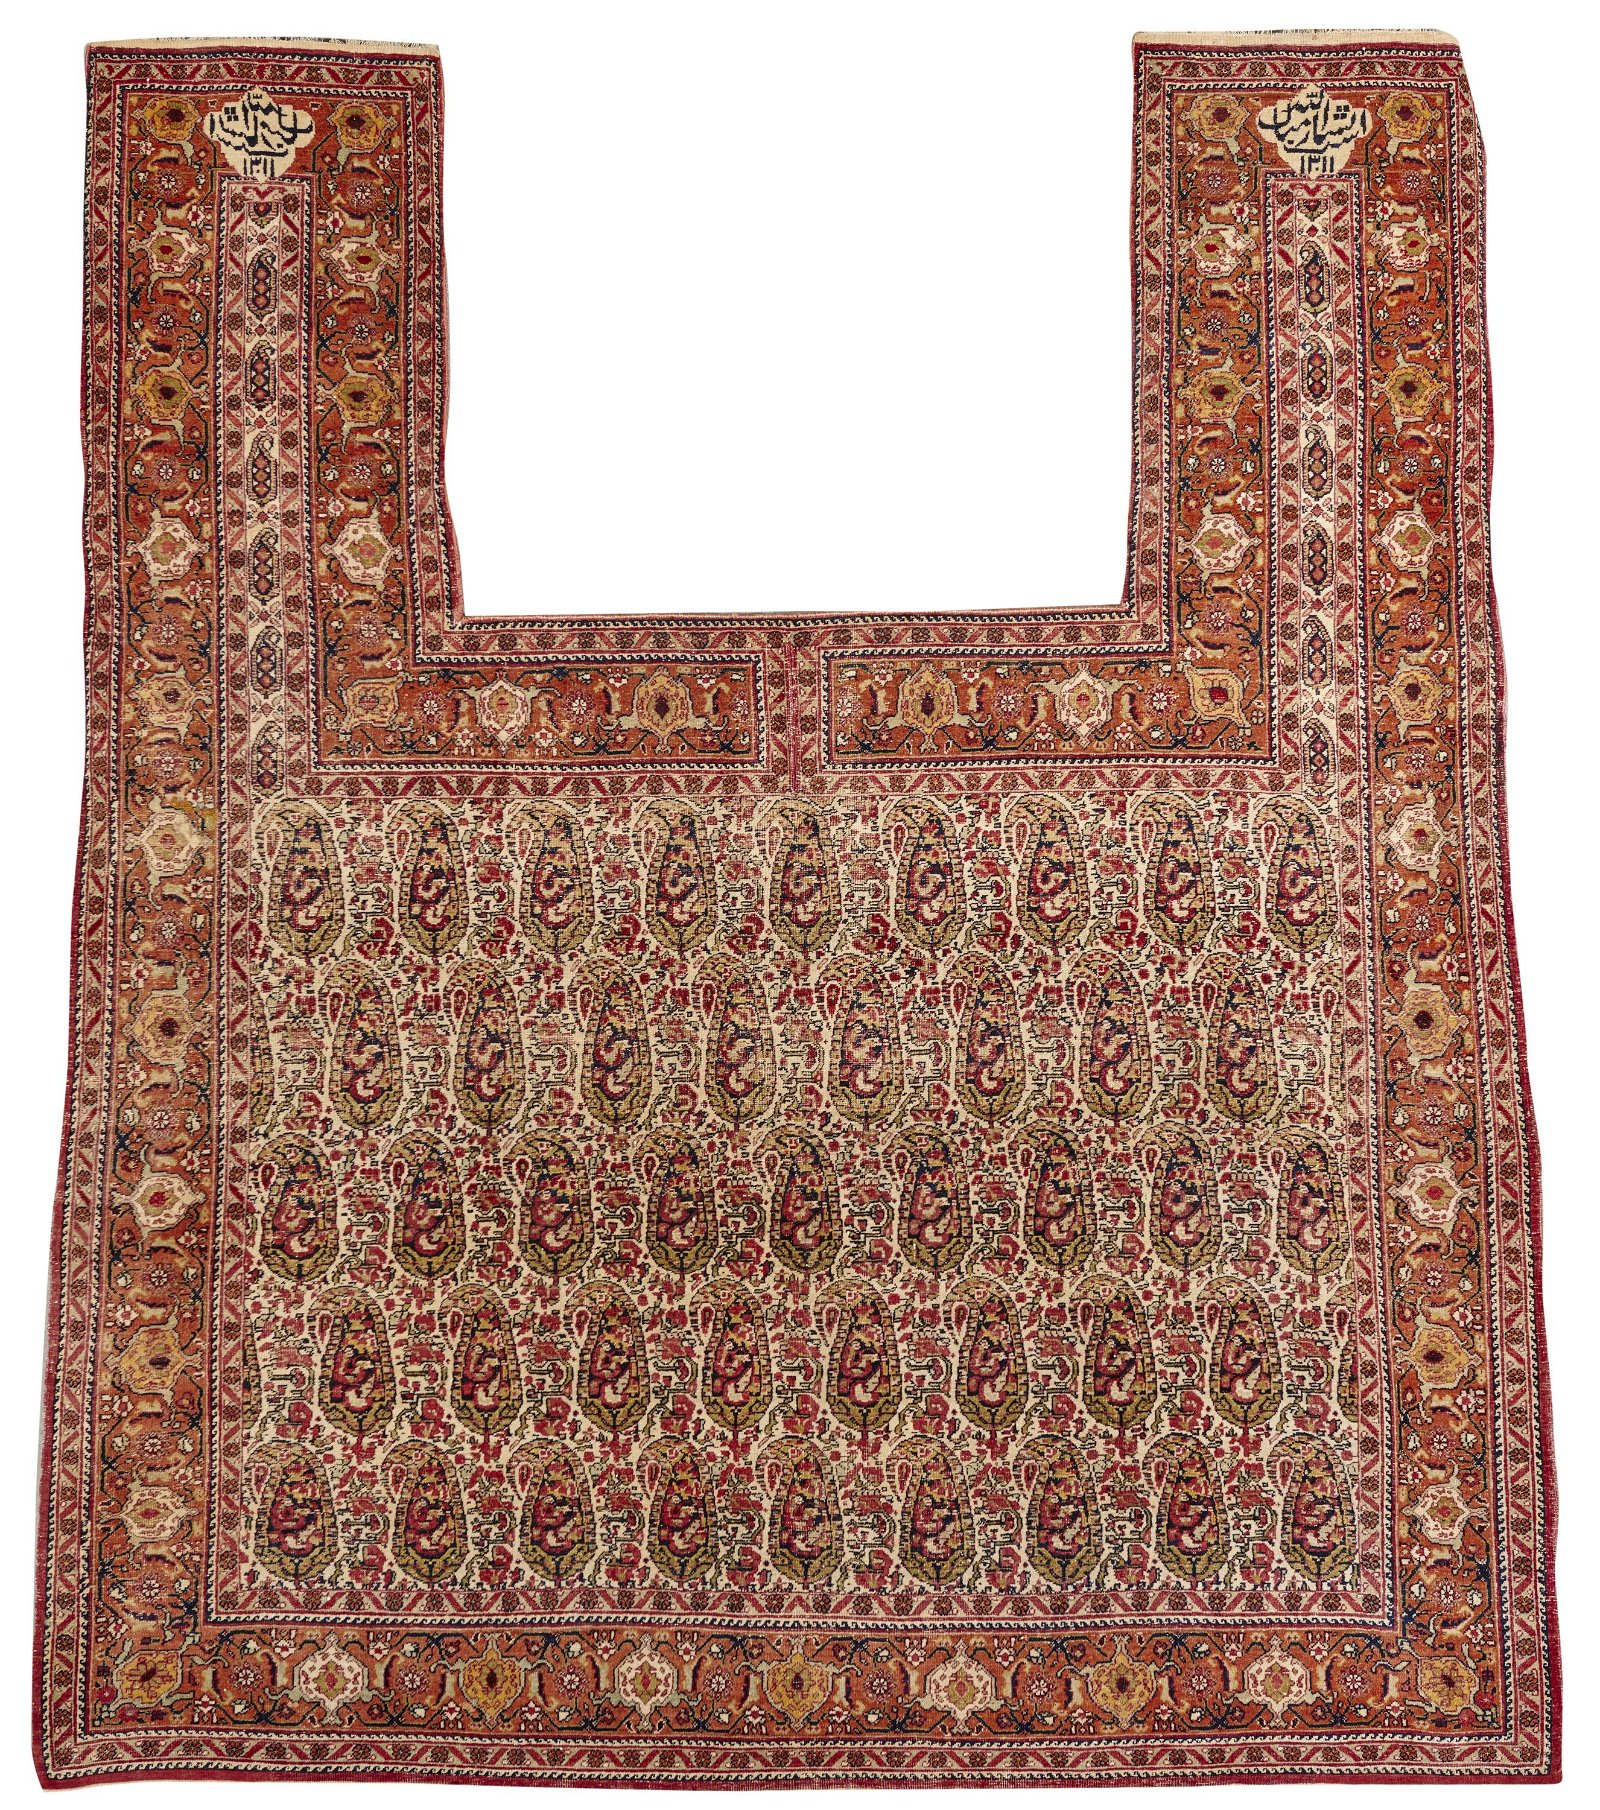 Kirman Horse Blanket, dated 1311 (1898), with